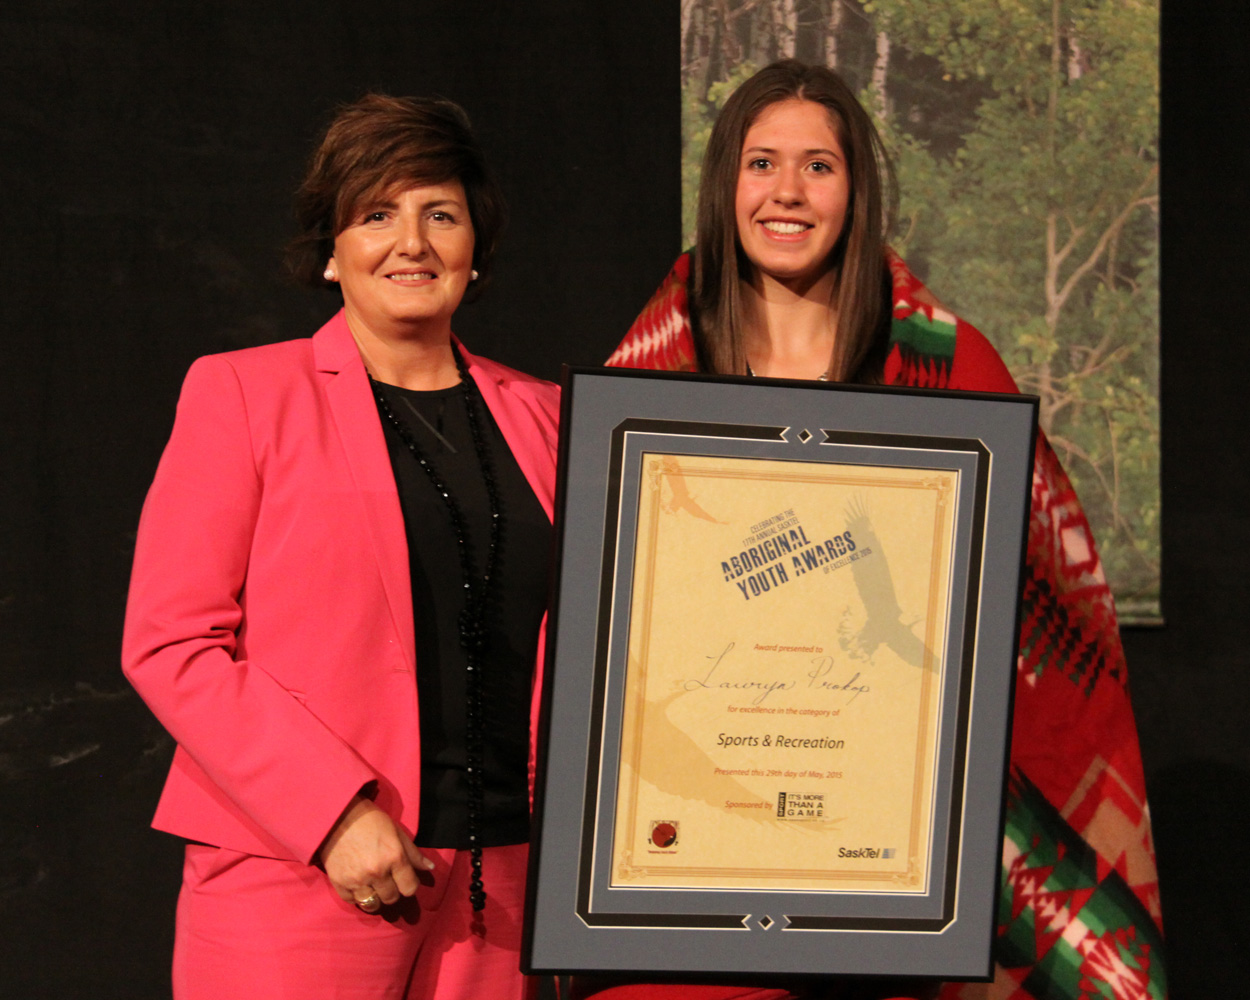 Lauryn Prokop received the Female Sport award from Audrey Young of SaskSport.